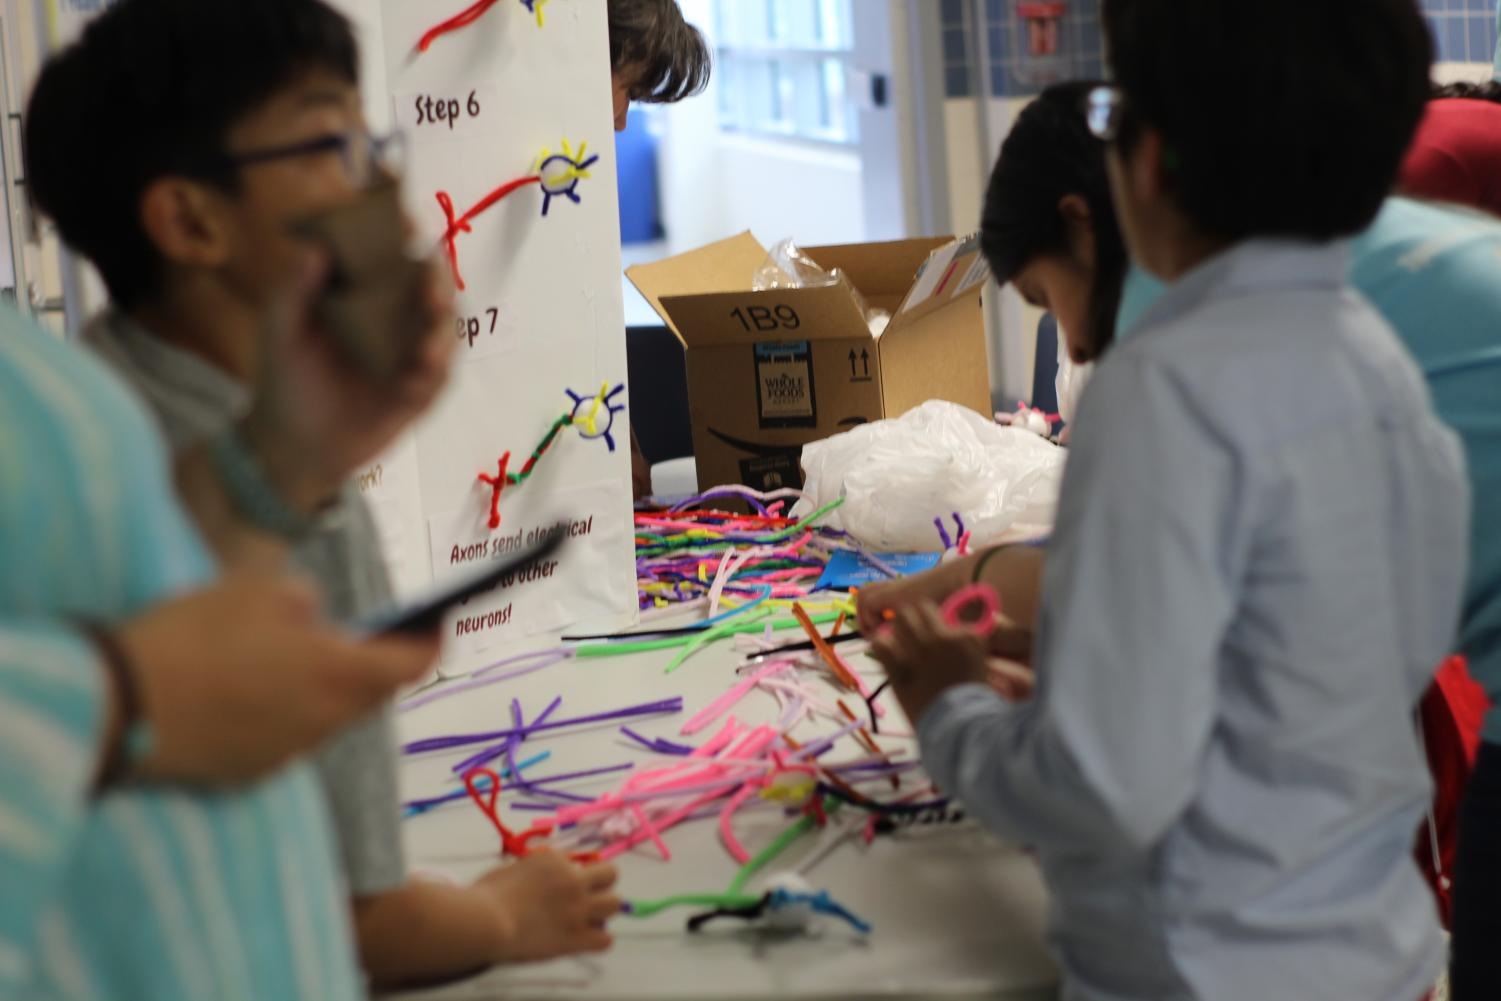 Elementary+school+students+create+neurons+out+of+pipe+cleaners+at+booth+hosted+by+Jefferson%27s+Neuroscience+Society.